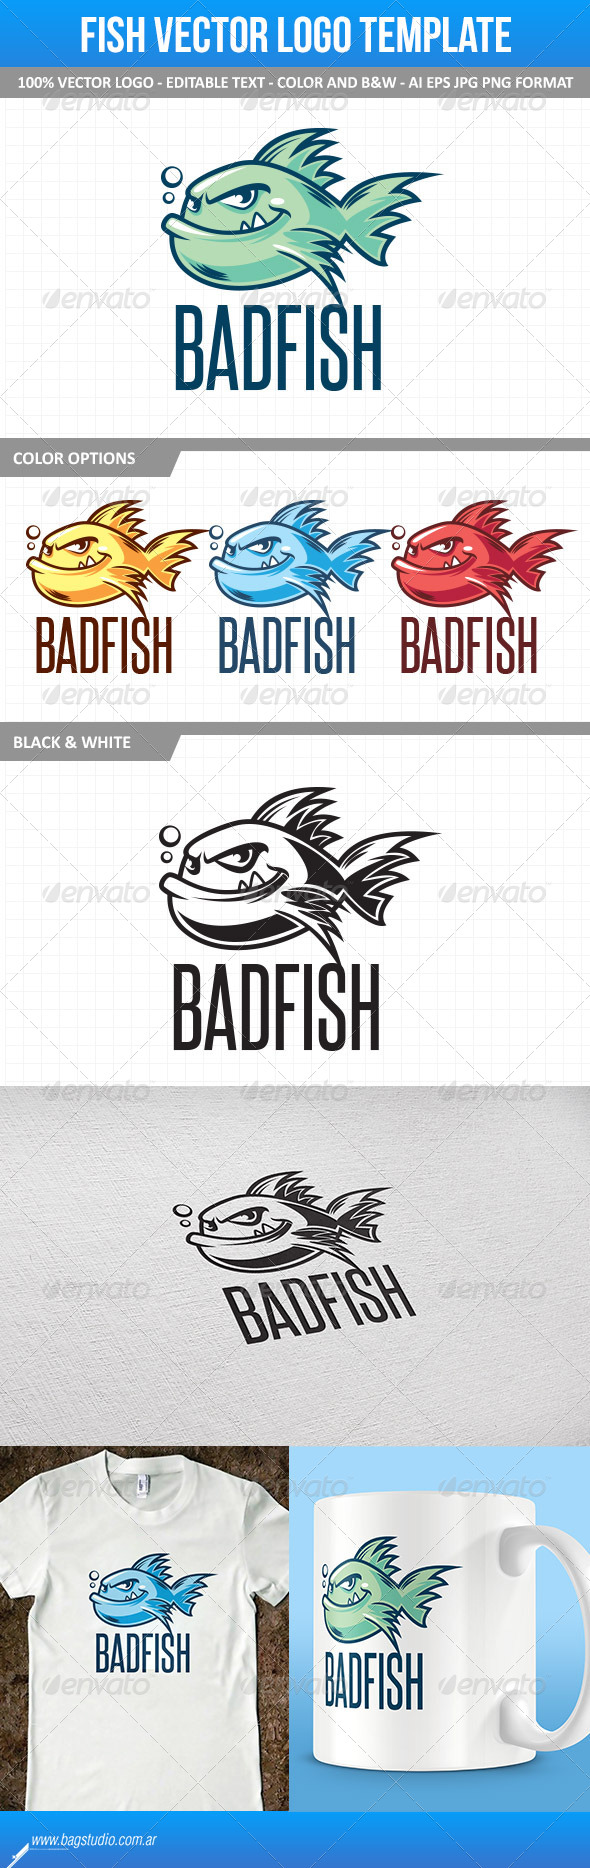 Fish Mascot Vector Logo Template - Animals Logo Templates